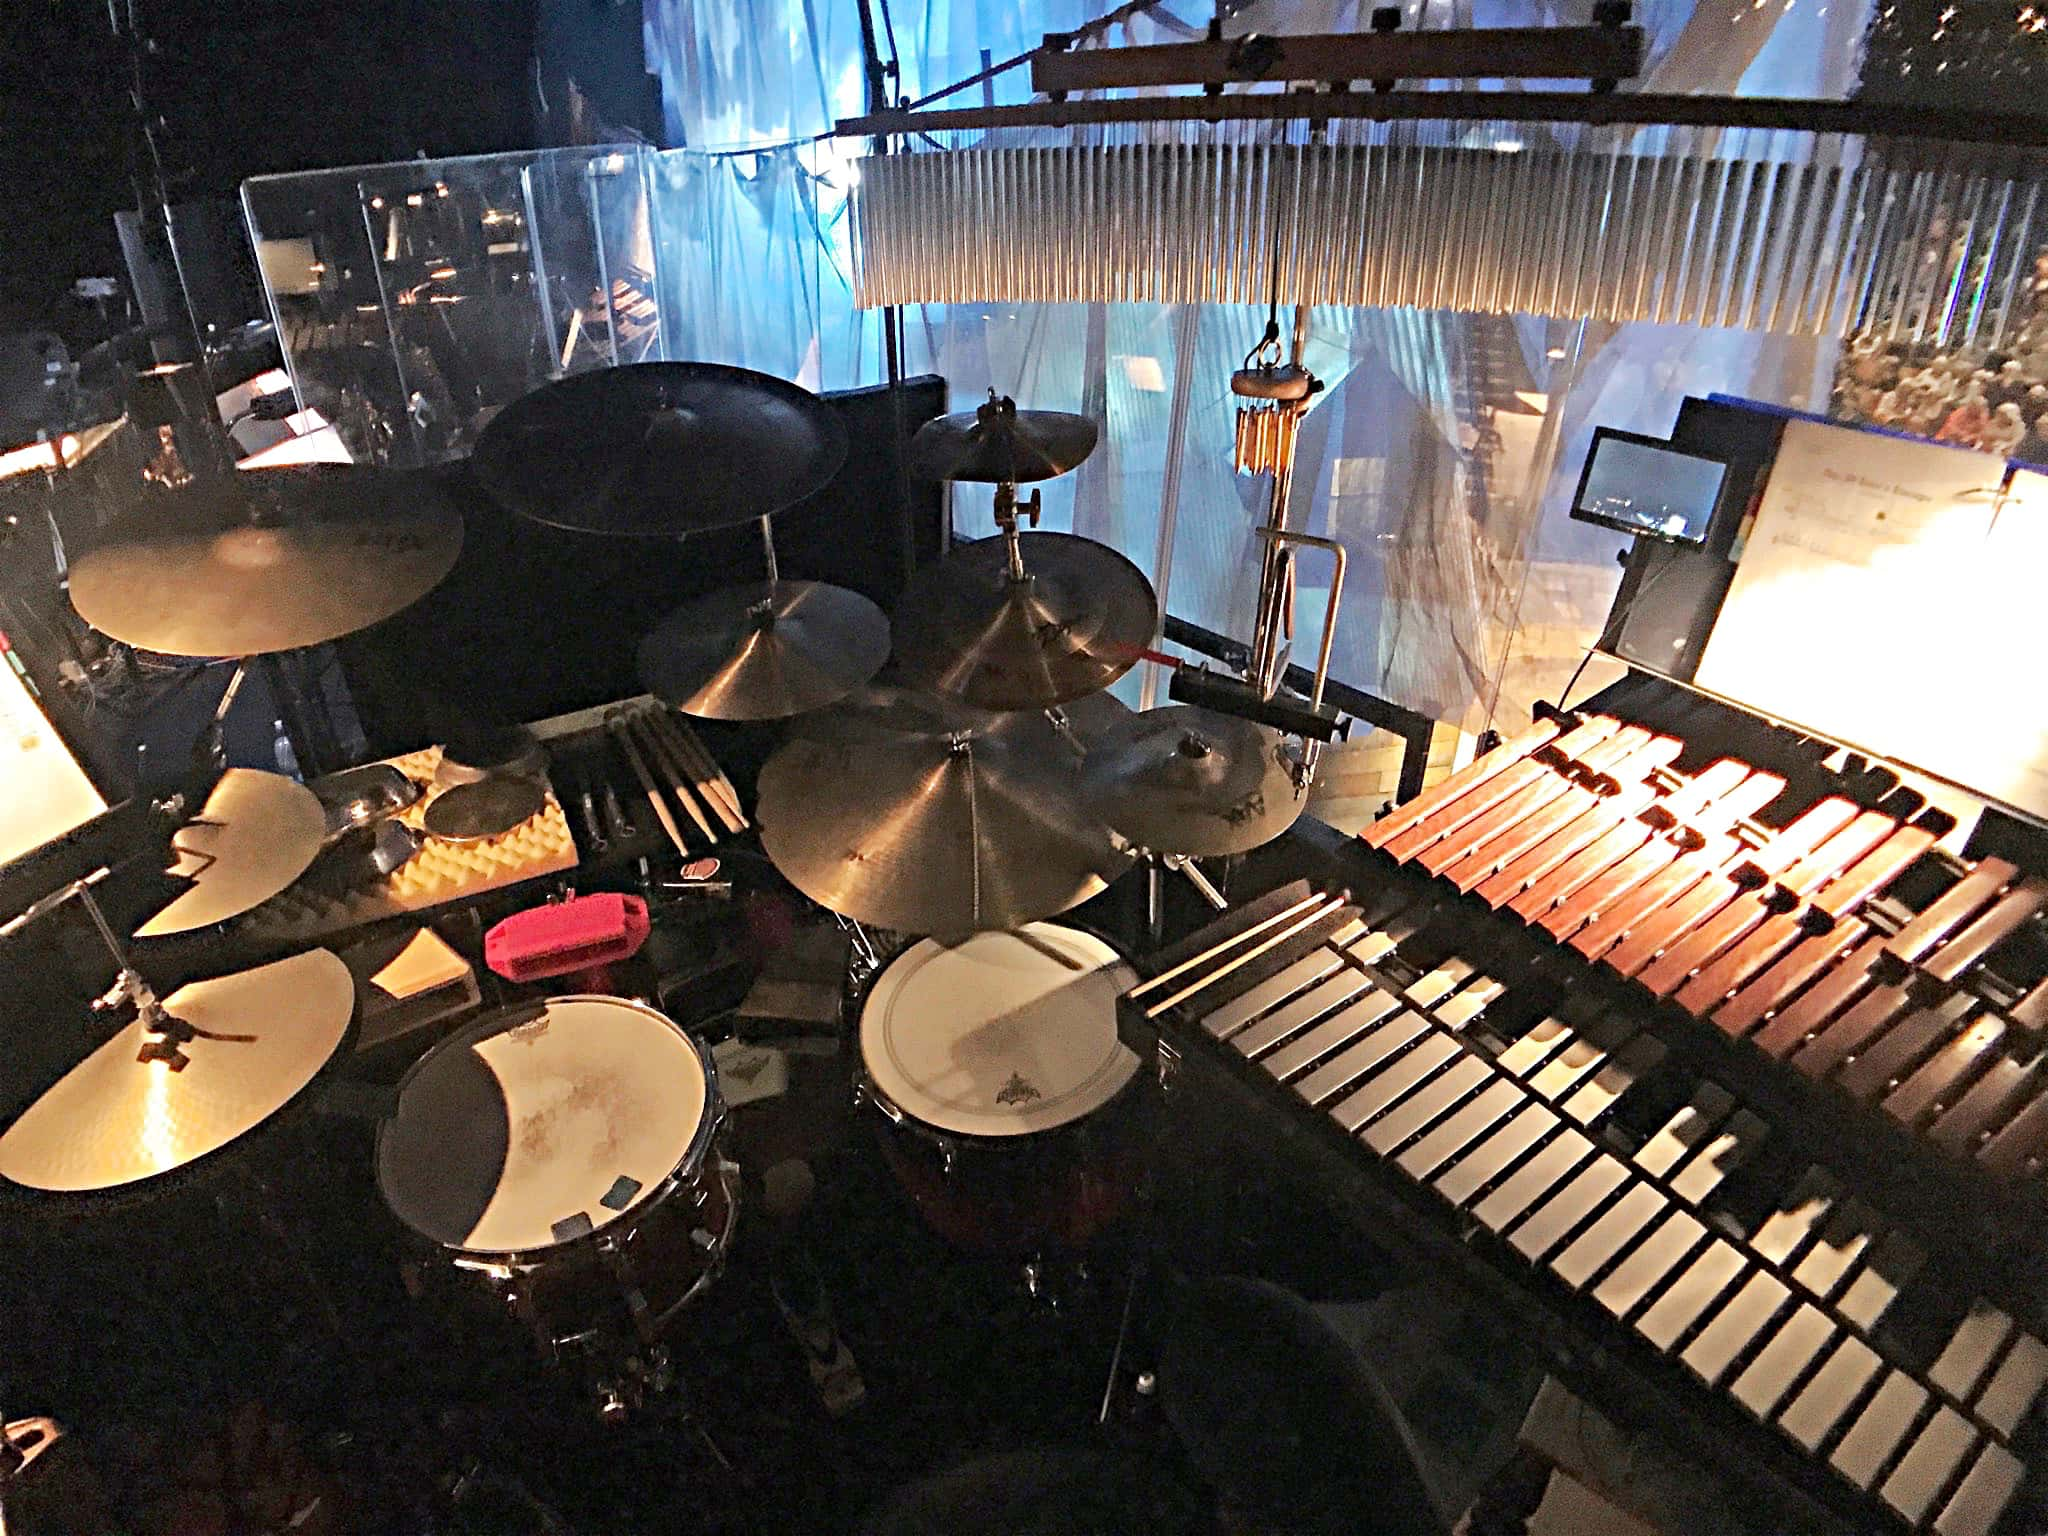 George English's setup for The Wizard of Oz at the Crucible Theatre in Sheffield, South Yorkshire, England.